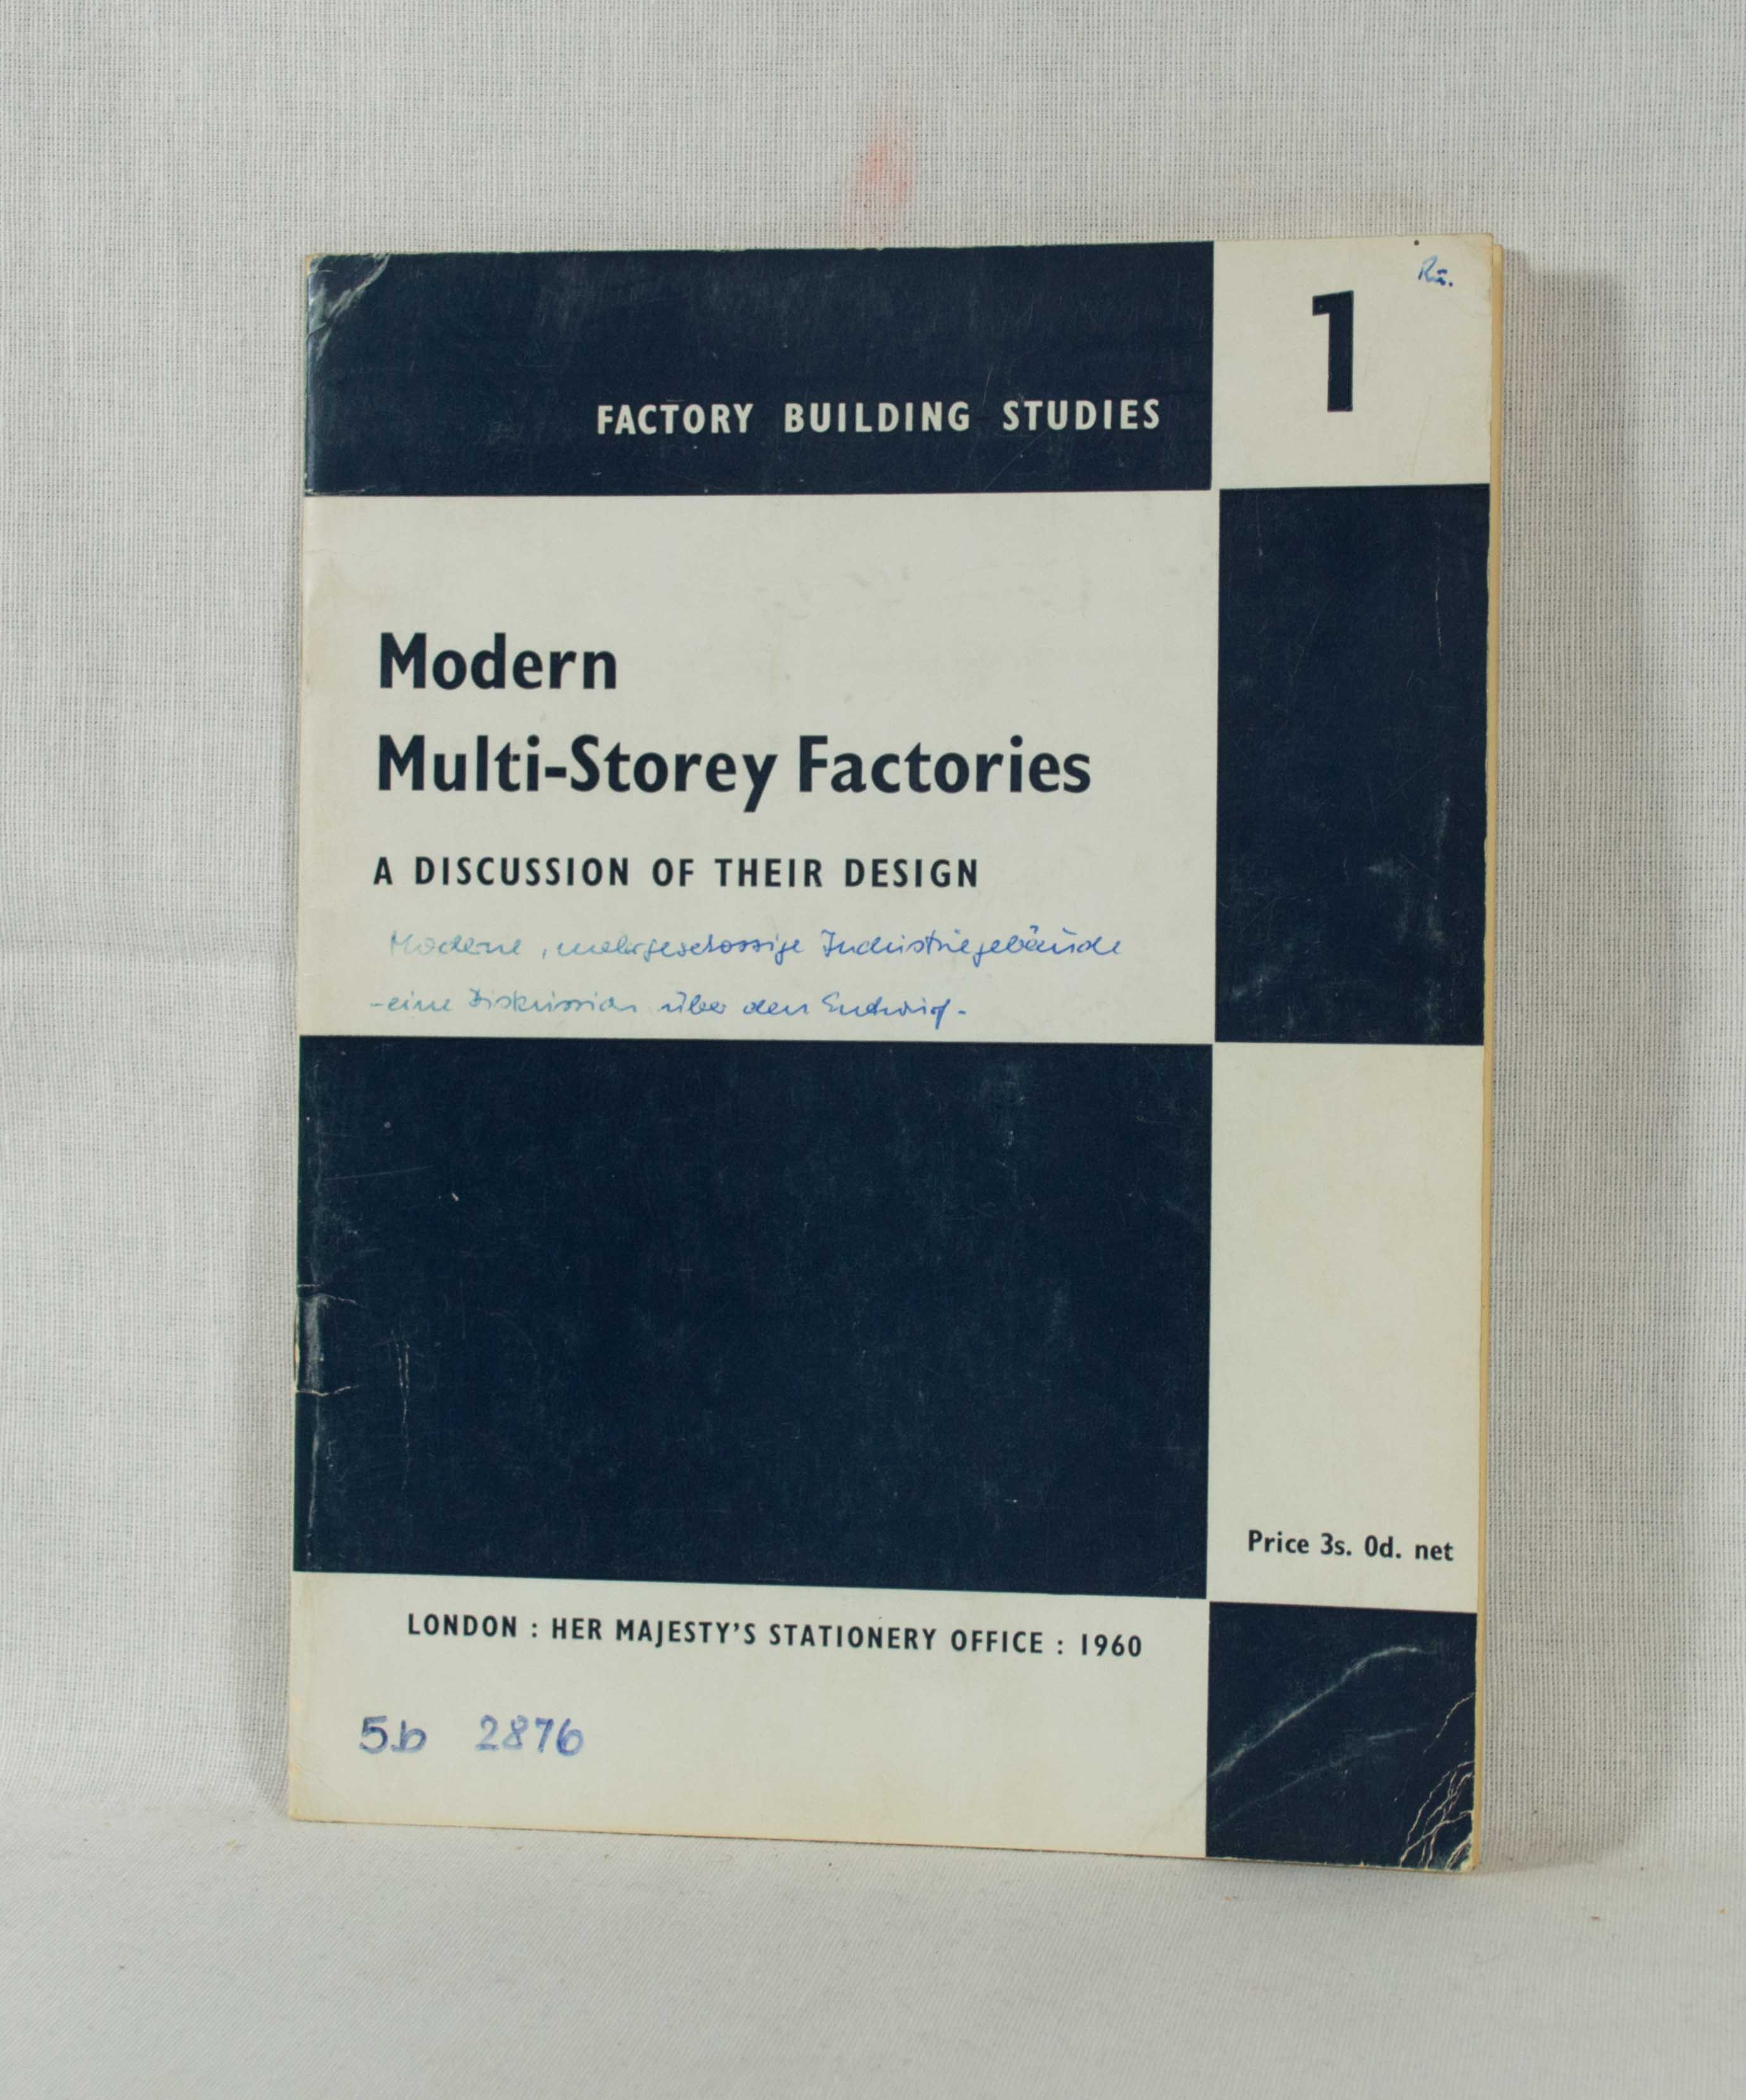 Modern Multi-Storey Factories: A discussion of their design. (= Department of Scientific & Industrial Research, Building Research Station, Factory Building Studies No.1). Reprint from 1959.